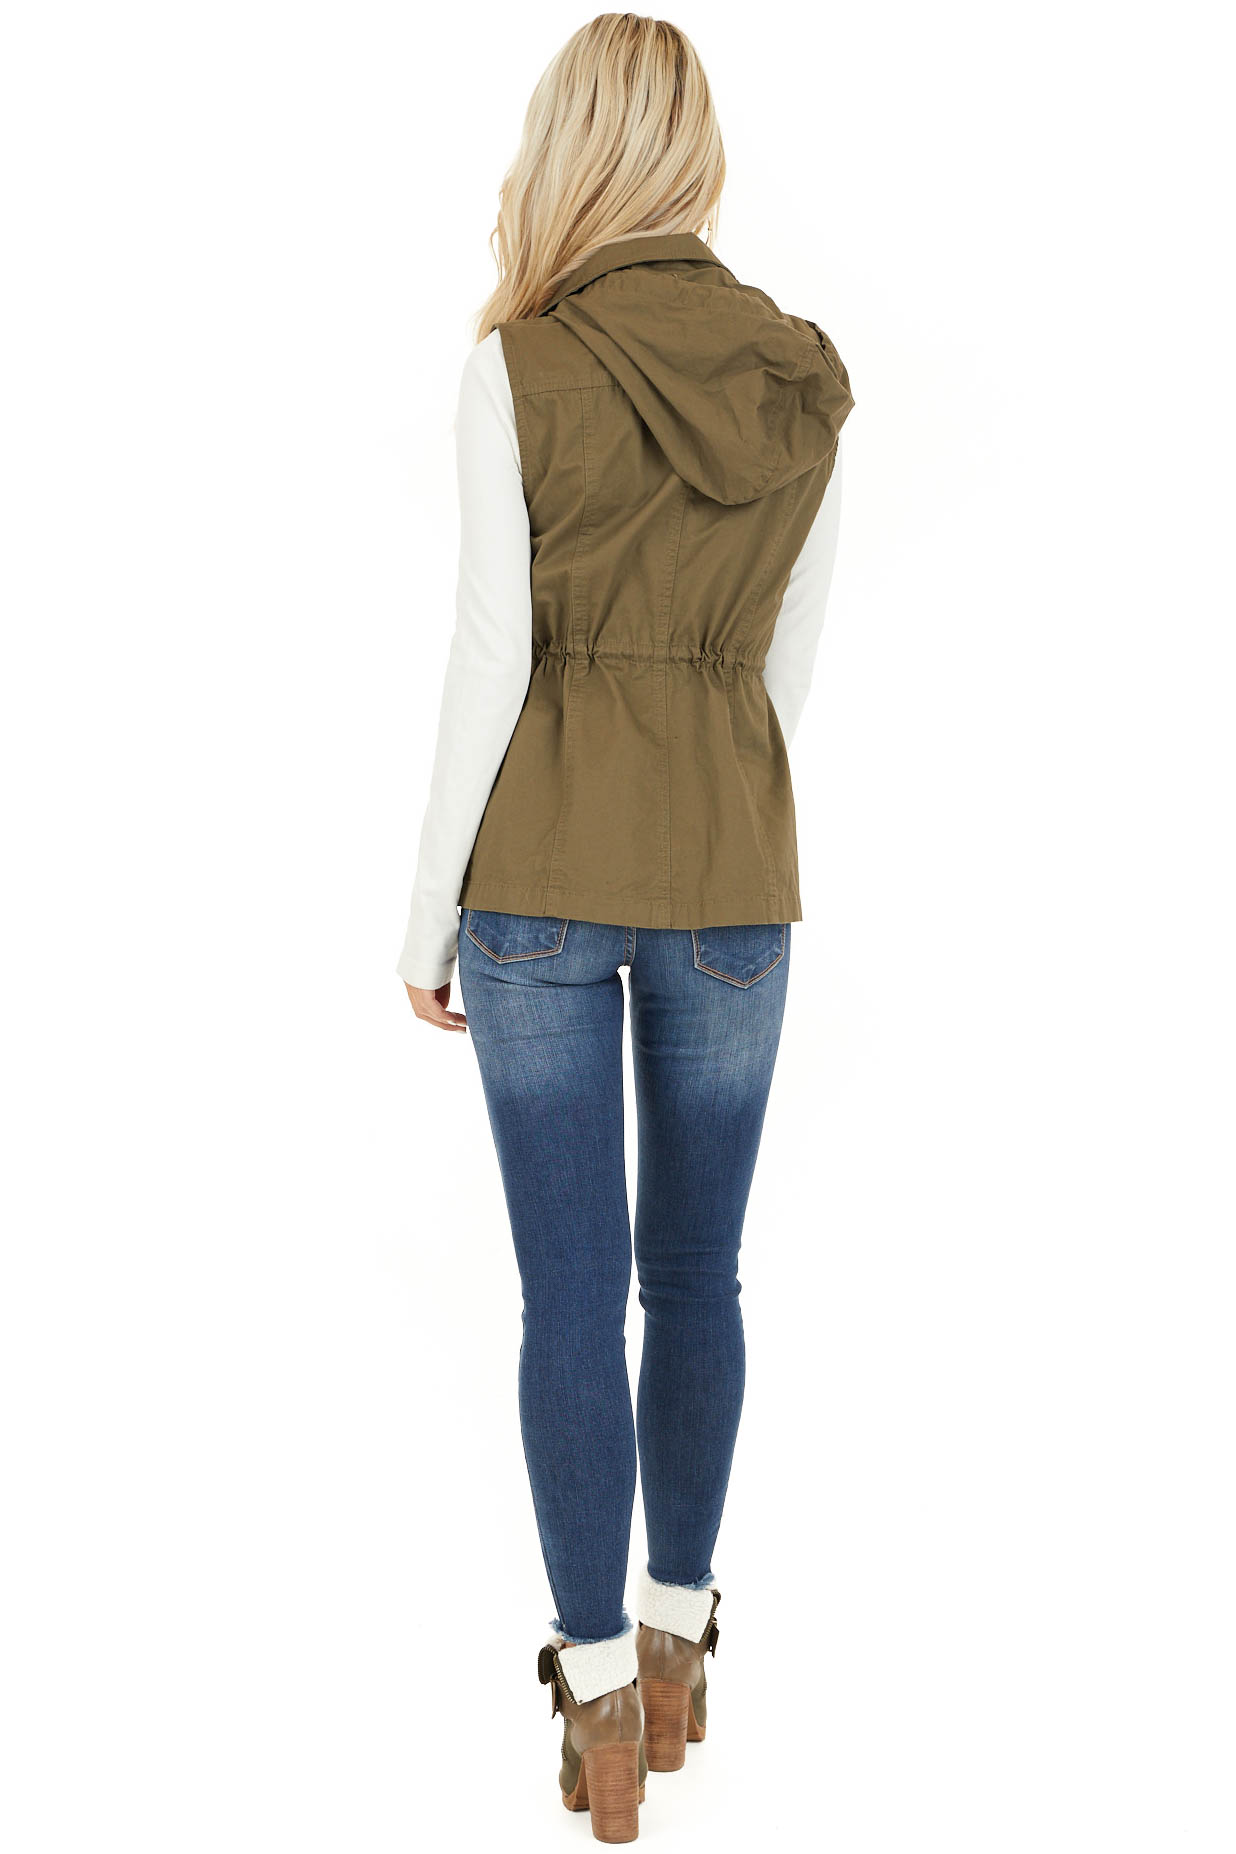 Olive Cargo Vest with Front Pockets and Cinched Waist back full body